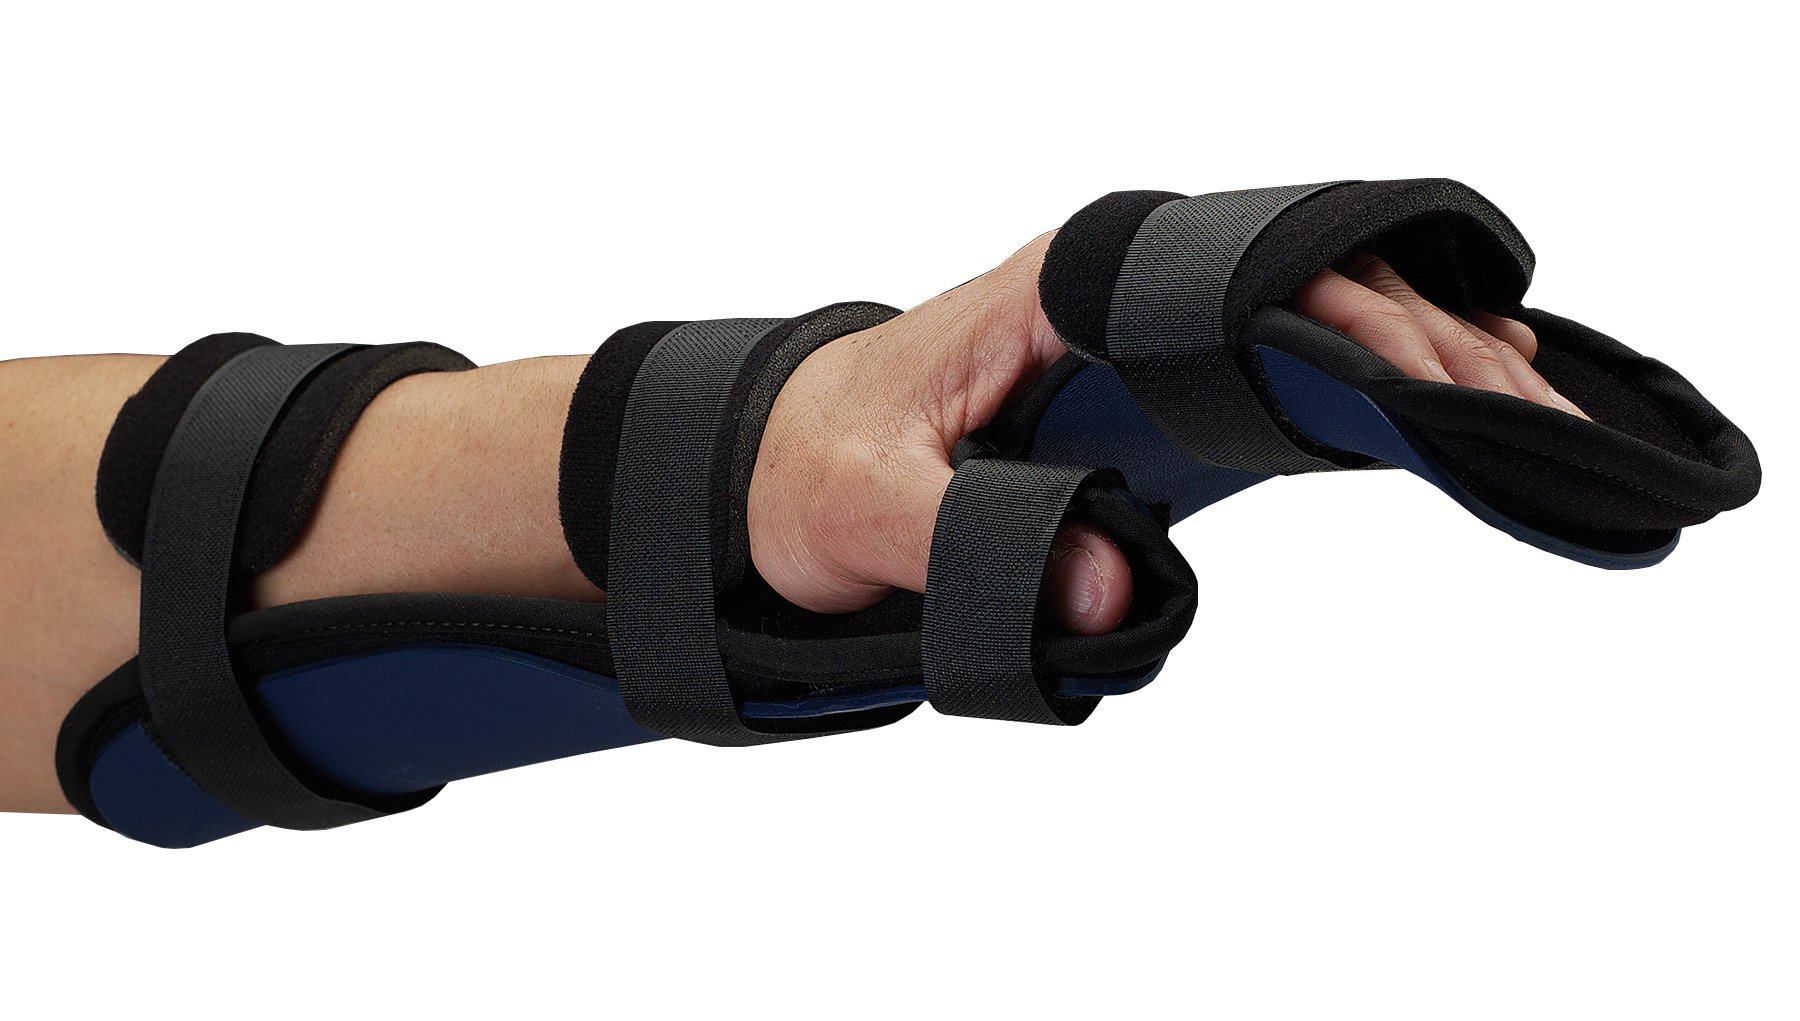 Rolyan Kydex Functional Resting Orthosis for Left Wrist, Wrist Splint for Tendinitis, Inflammation, Carpal Tunnel, Tendonitis, Wrist Splint & Forearm Support & Alignment, Requires Heat Gun, X-Small